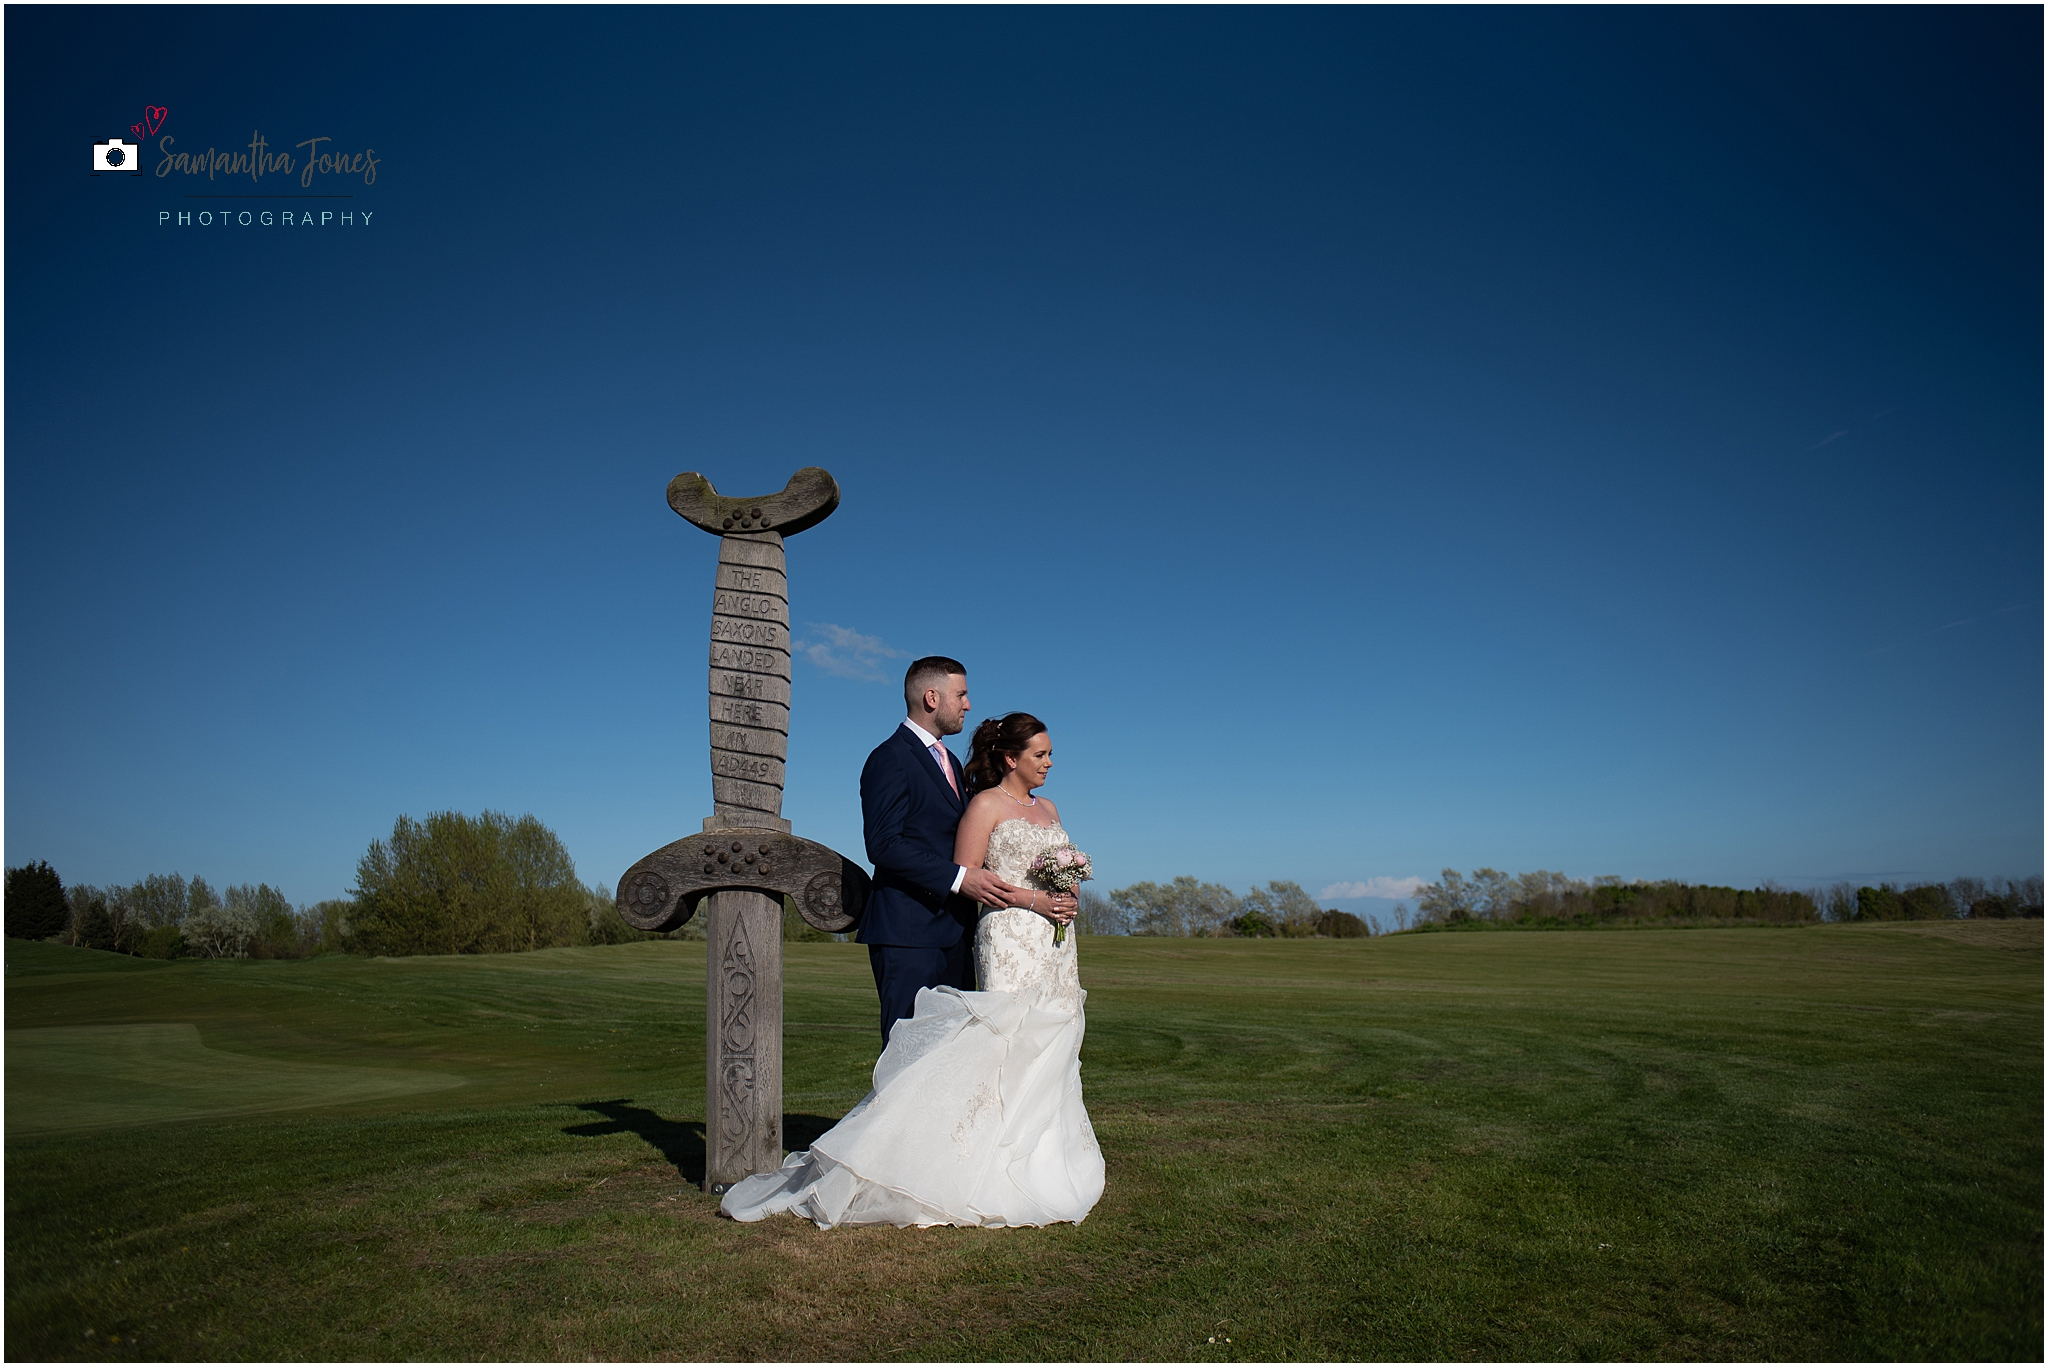 Emma and Aaron twilight wedding at Stonelees portraits by the Viking sword